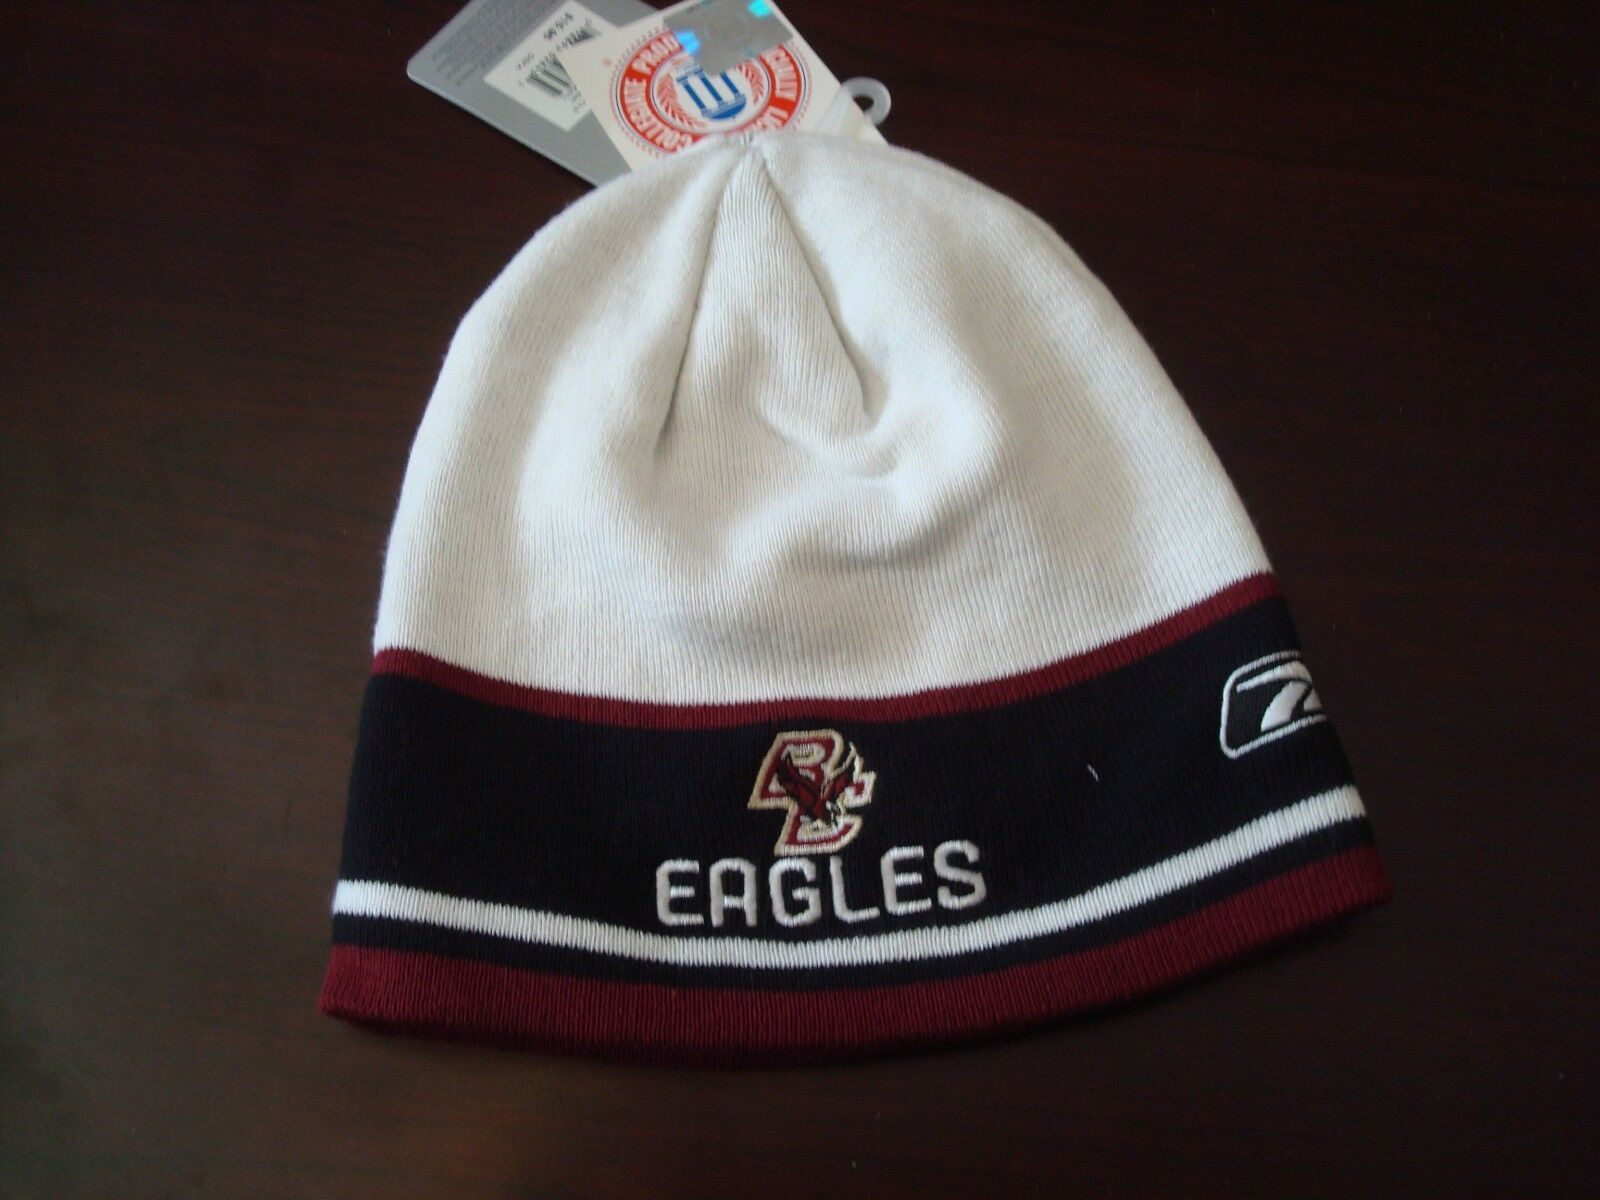 BOSTON COLLEGE EAGLES REEBOK  SCRIPT HAT TOBOGGAN KNIT BEANIE SKULL HAT SCRIPT CAP 653542